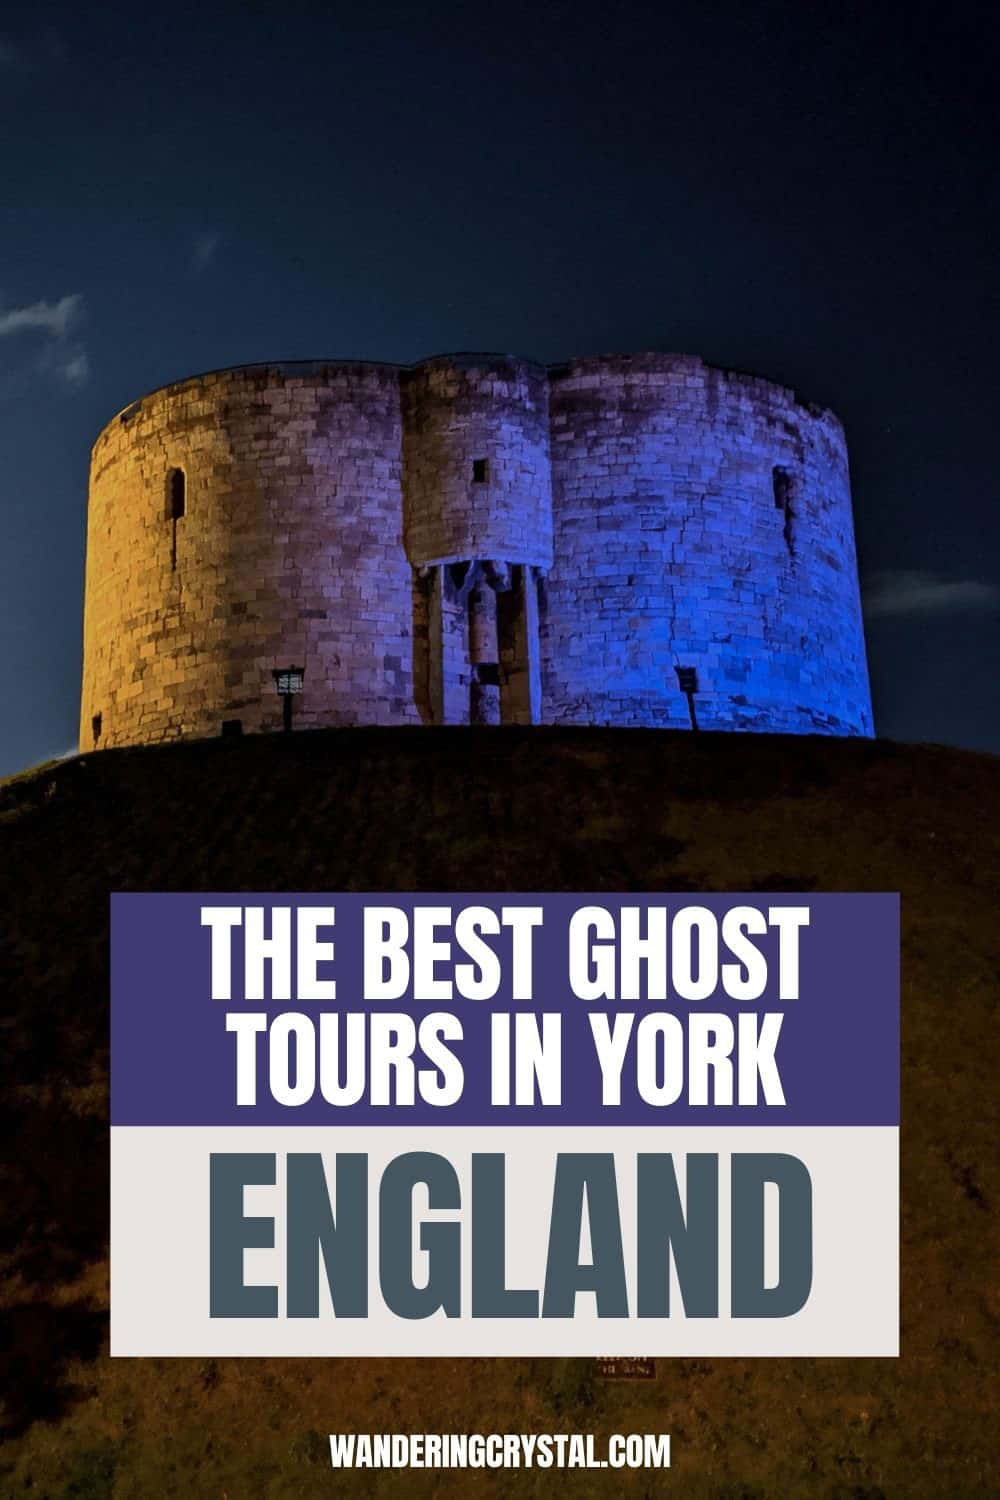 The Best Ghost Tours in York England